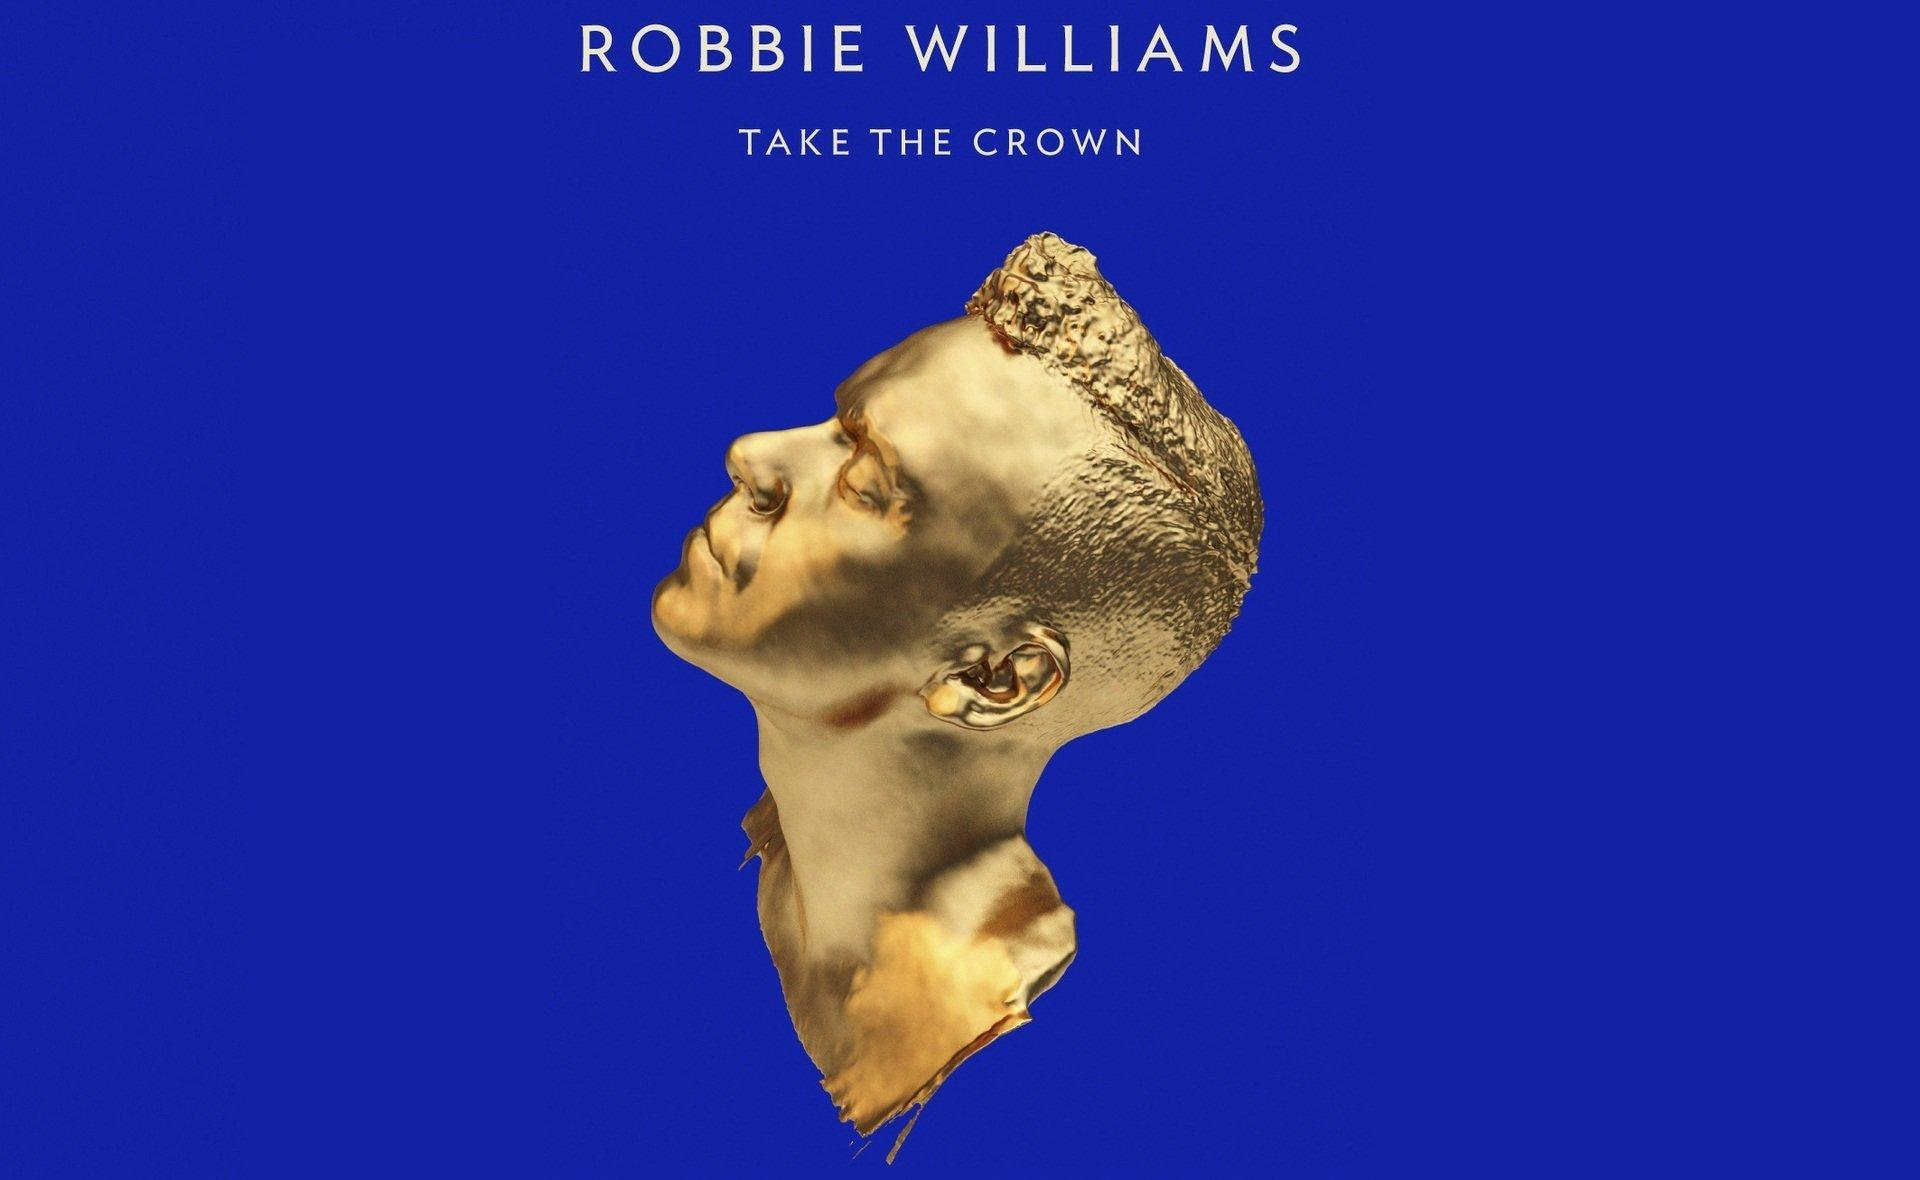 robbie williams take the crown blue gold HD wallpaper